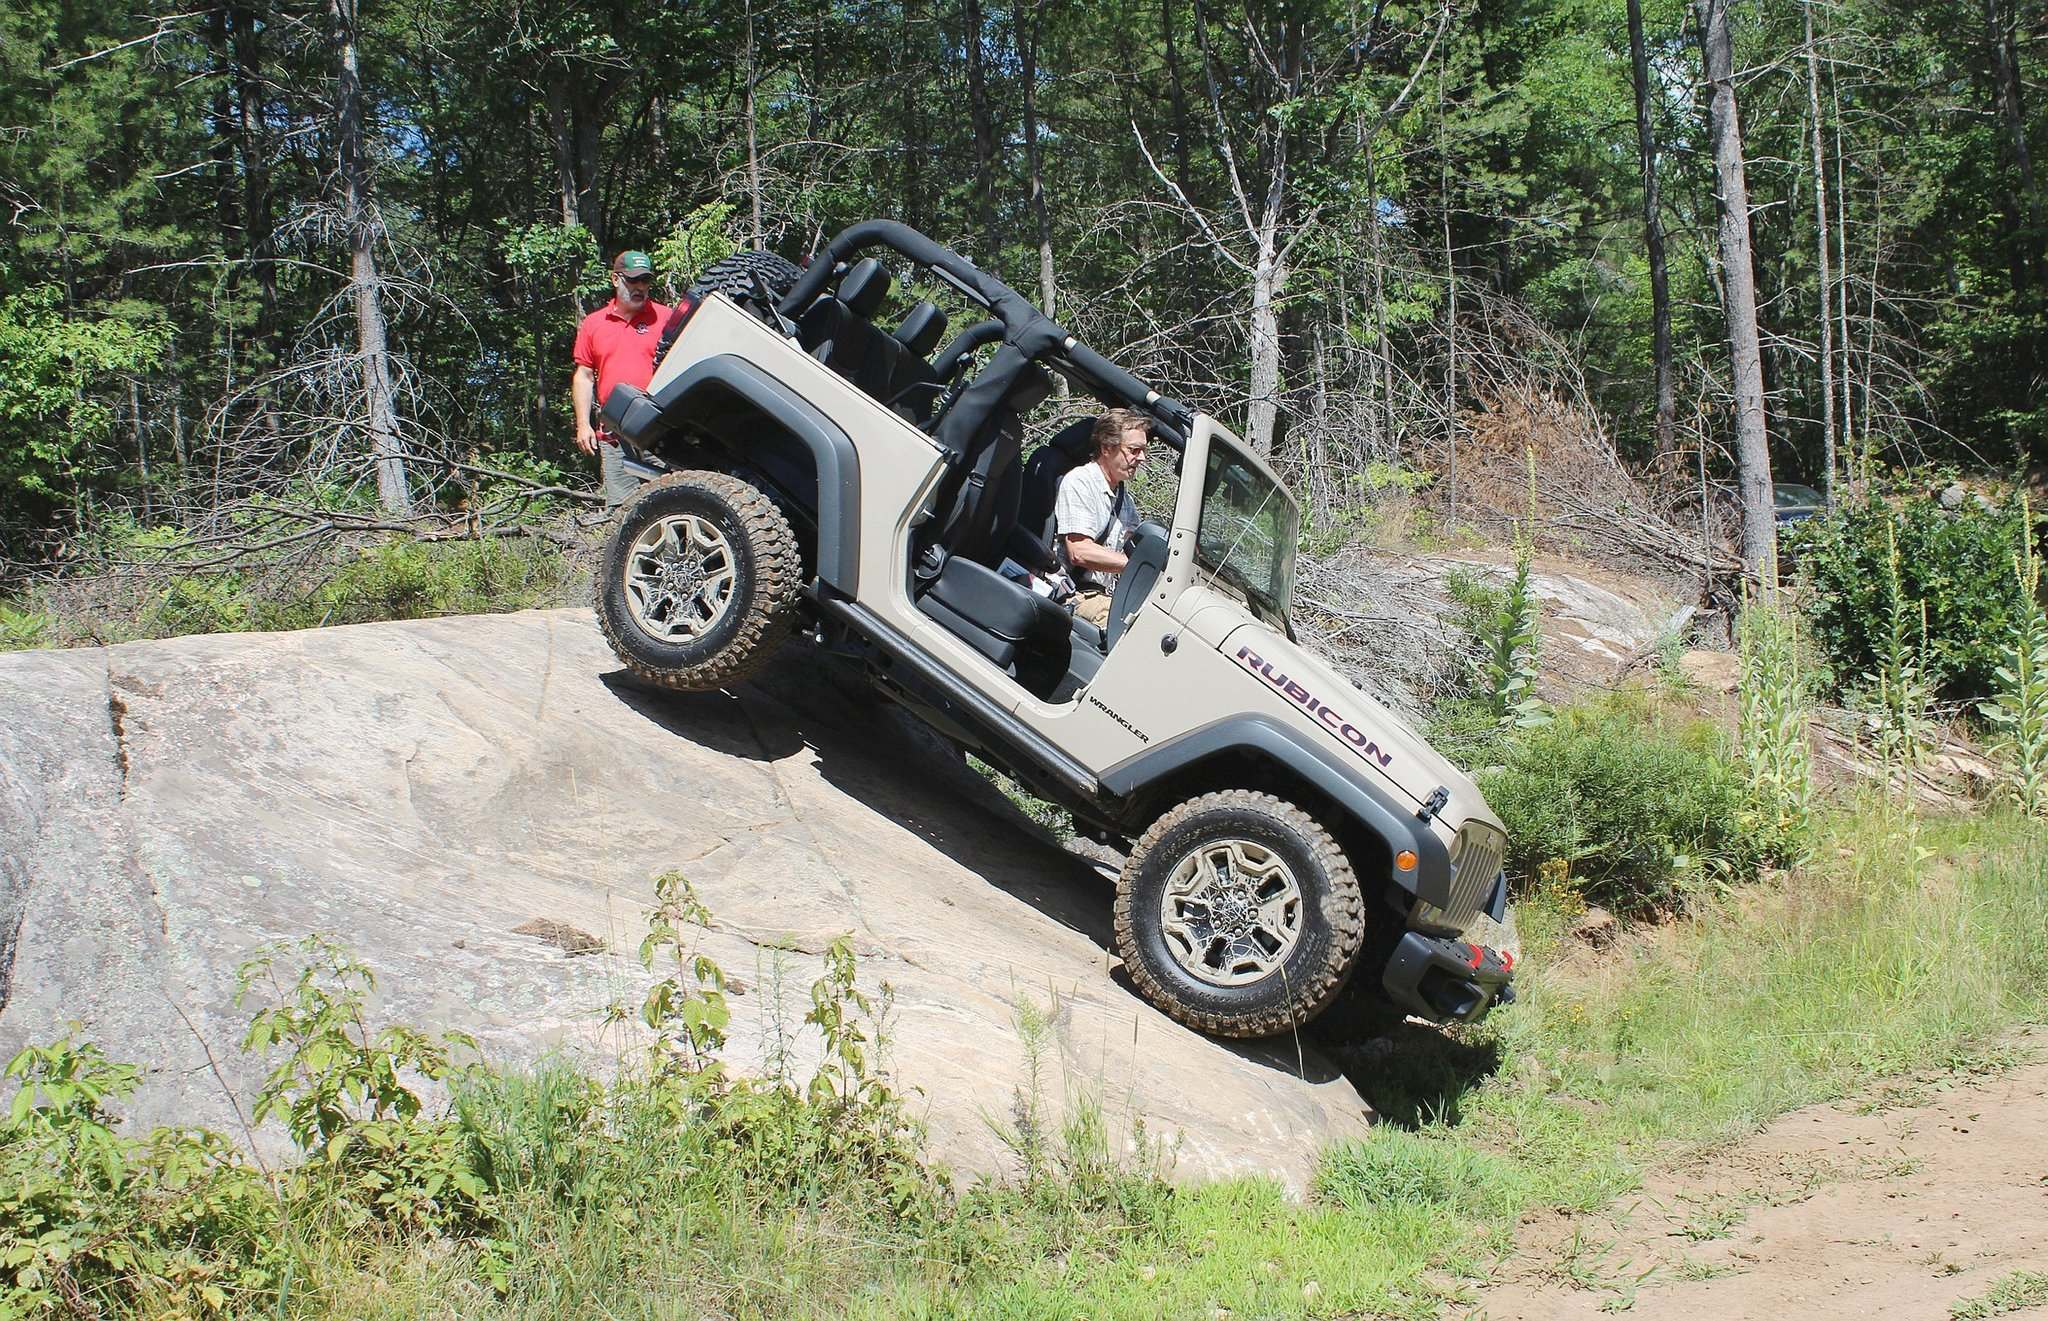 Peter Bleakney having a blast off-road in a 2016 Jeep Wrangler Rubicon.